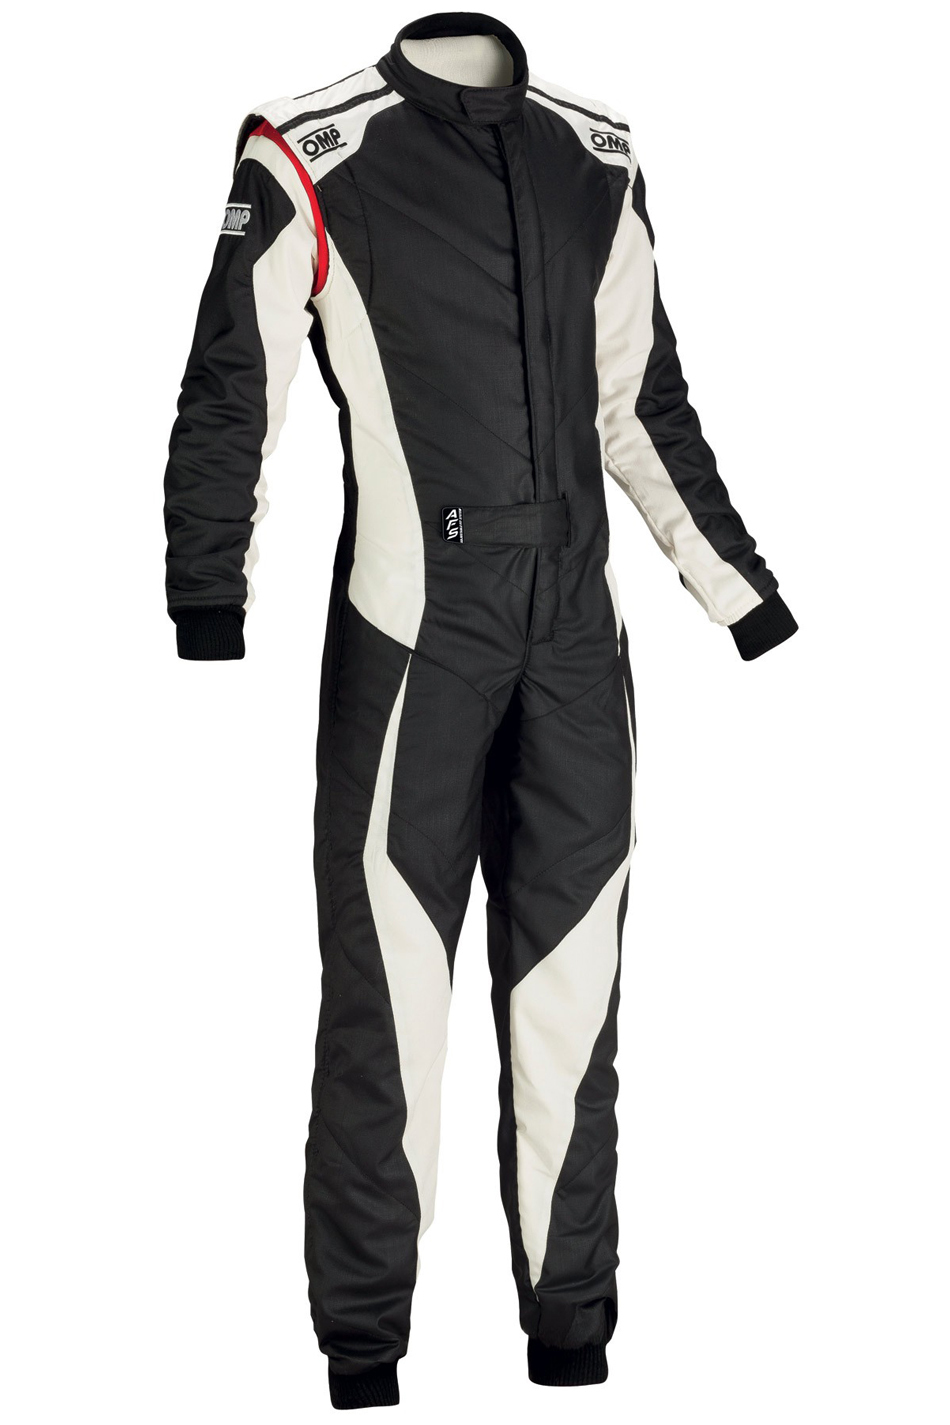 OMP Racing IA0185907656 Suit, Tecnica Evo, Driving, 1 Piece, SFI 3.2A/5, FIA Approved, Double Layer, Fire Retardant Fabric, Black / White, Size 56, Large, Each